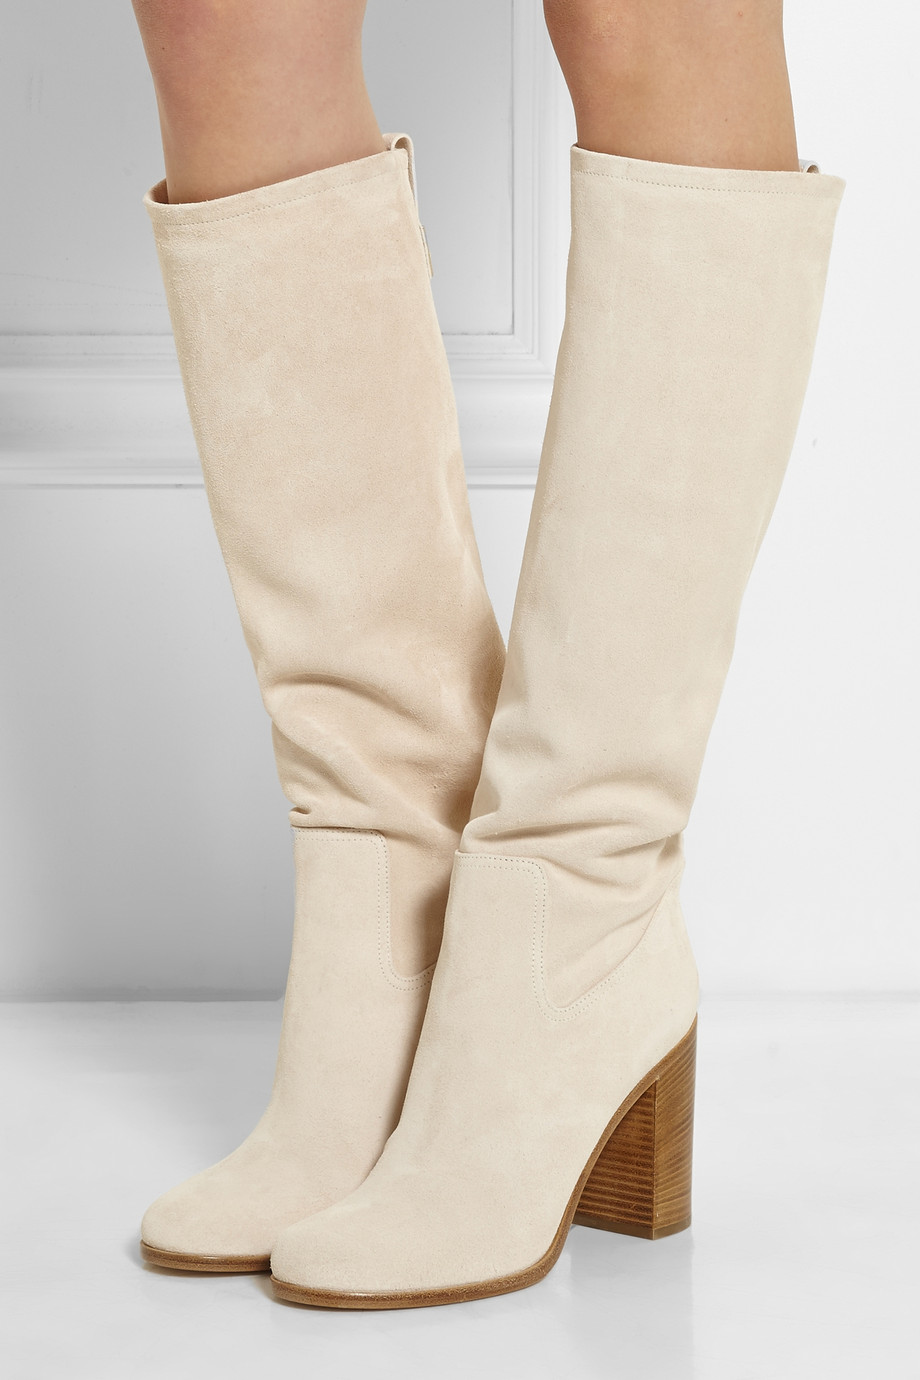 Compare Prices on Beige Suede- Online Shopping/Buy Low Price Beige ...